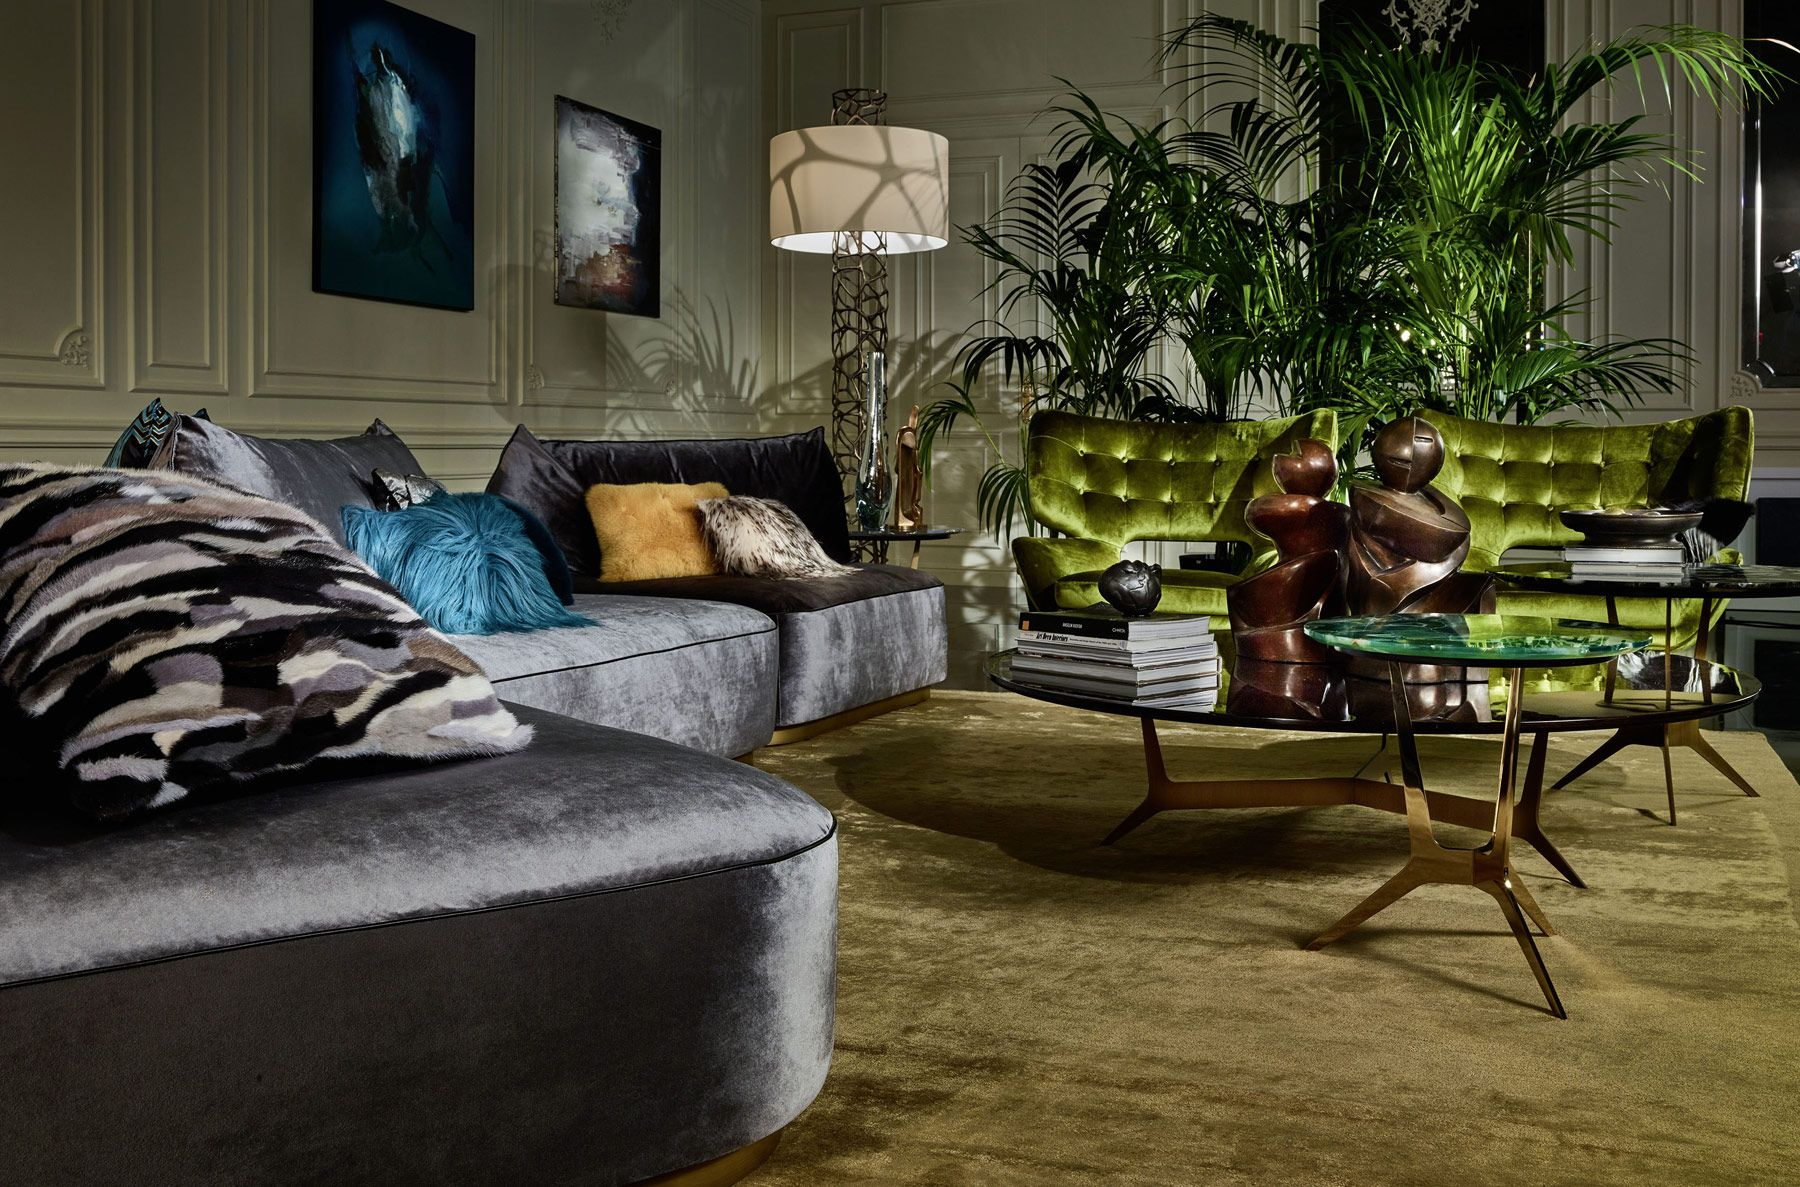 roberto cavalli welcomes 2017 with a fresh home interiors